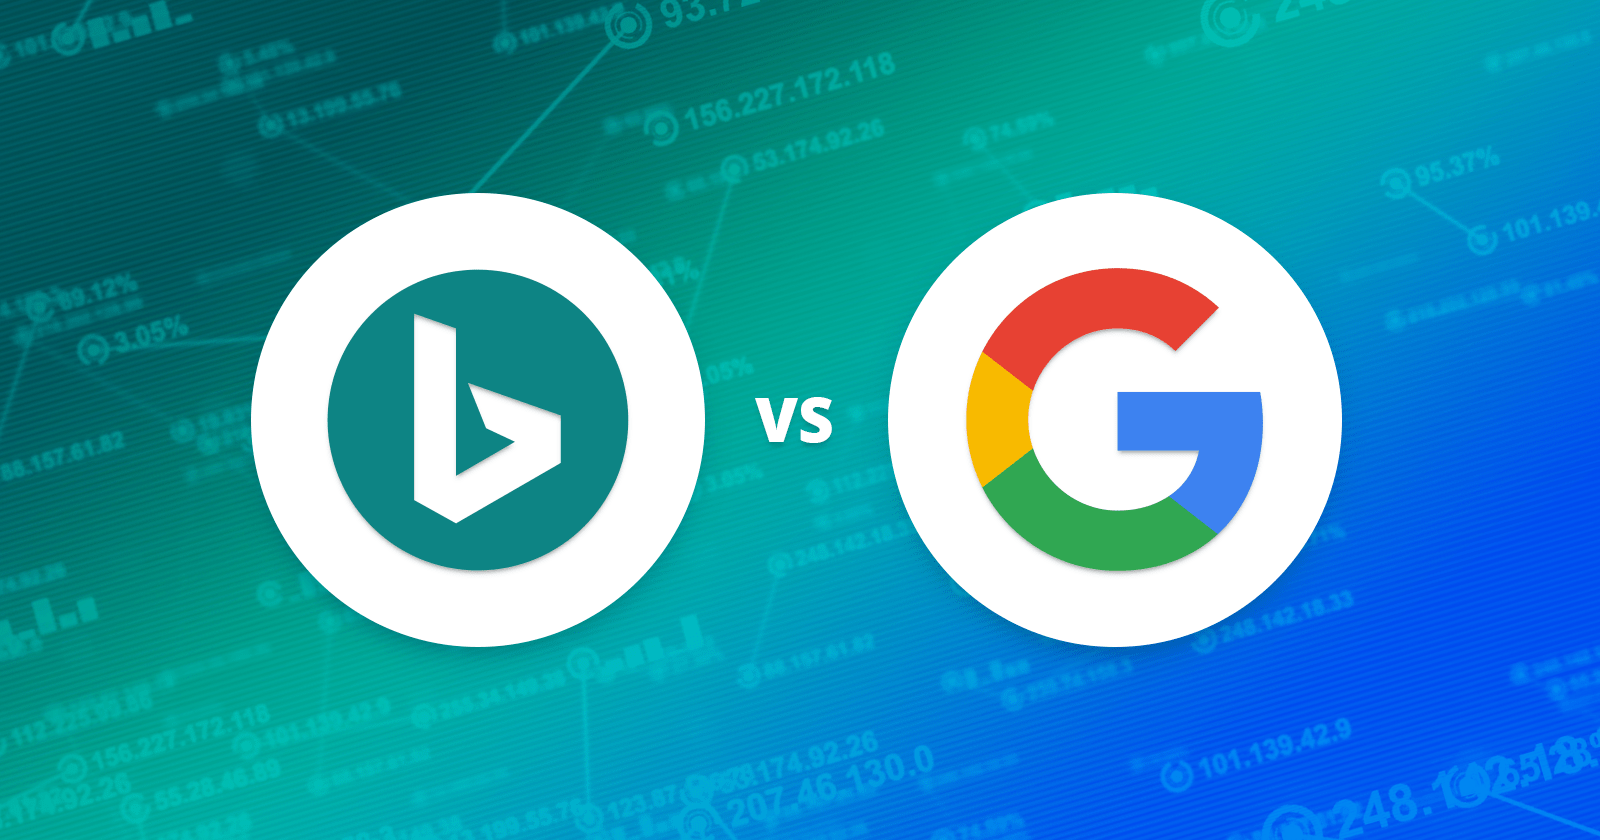 How to Build Links for Bing vs. Google by @ab80